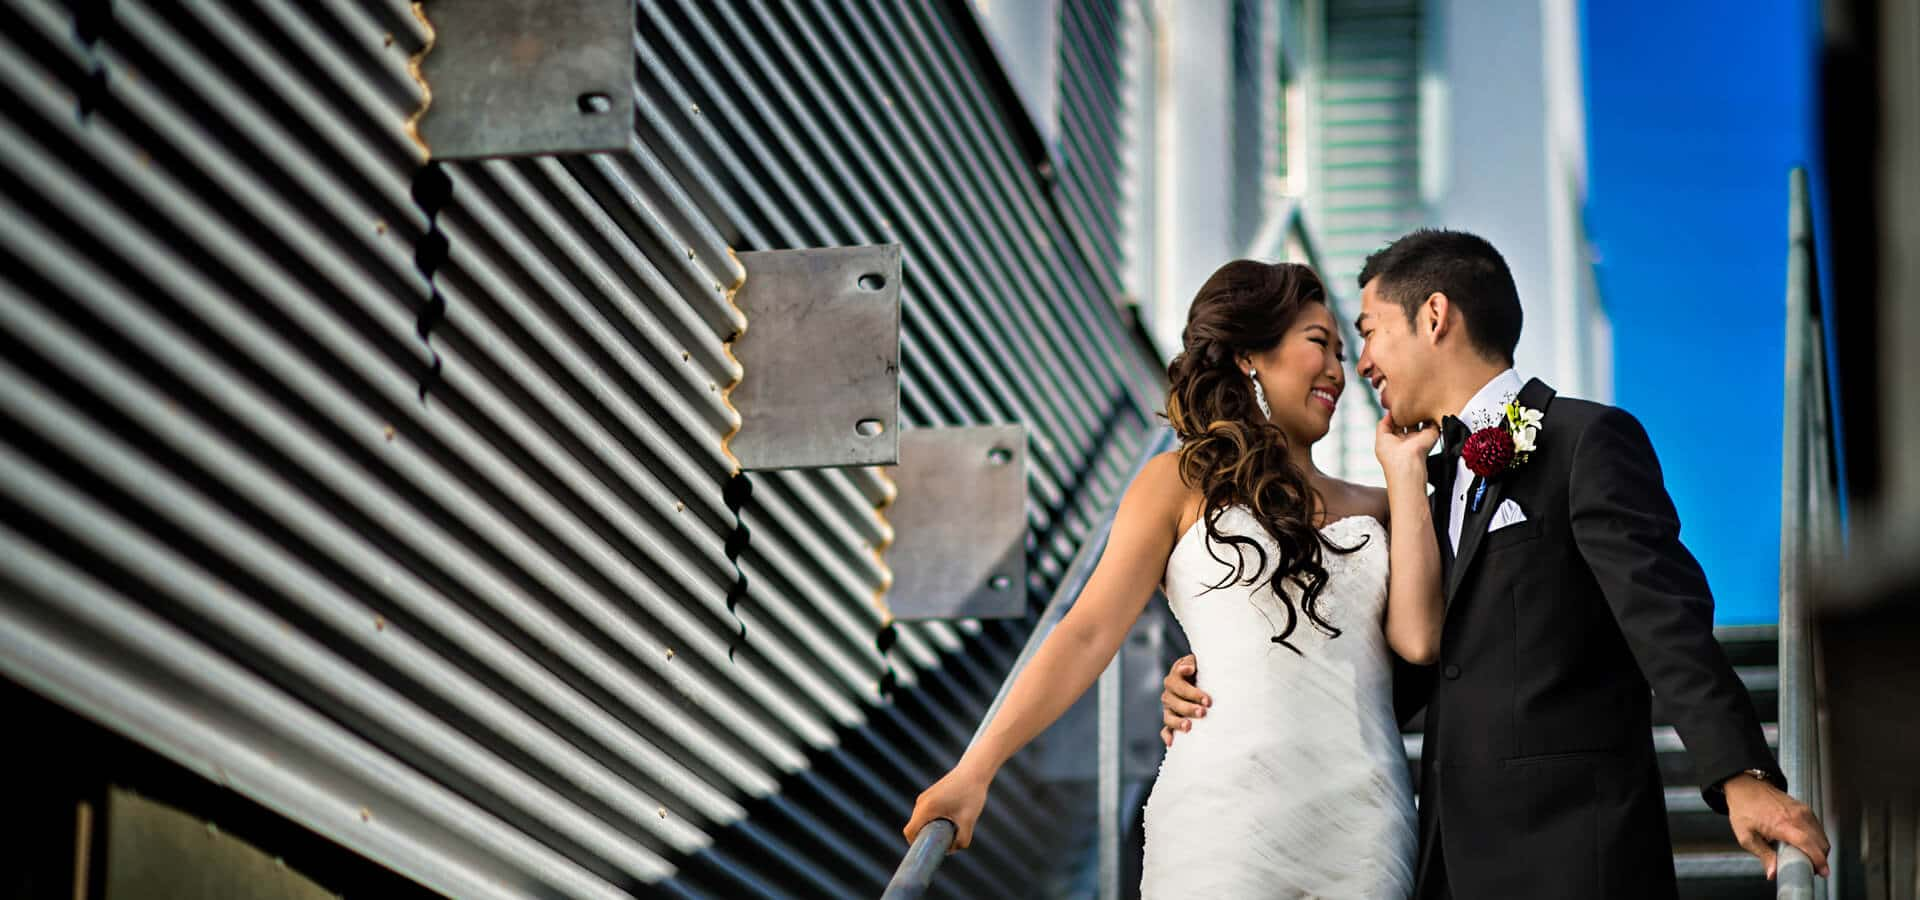 Hero image for Andrea & Desmond Tie The Knot at Liberty Grand